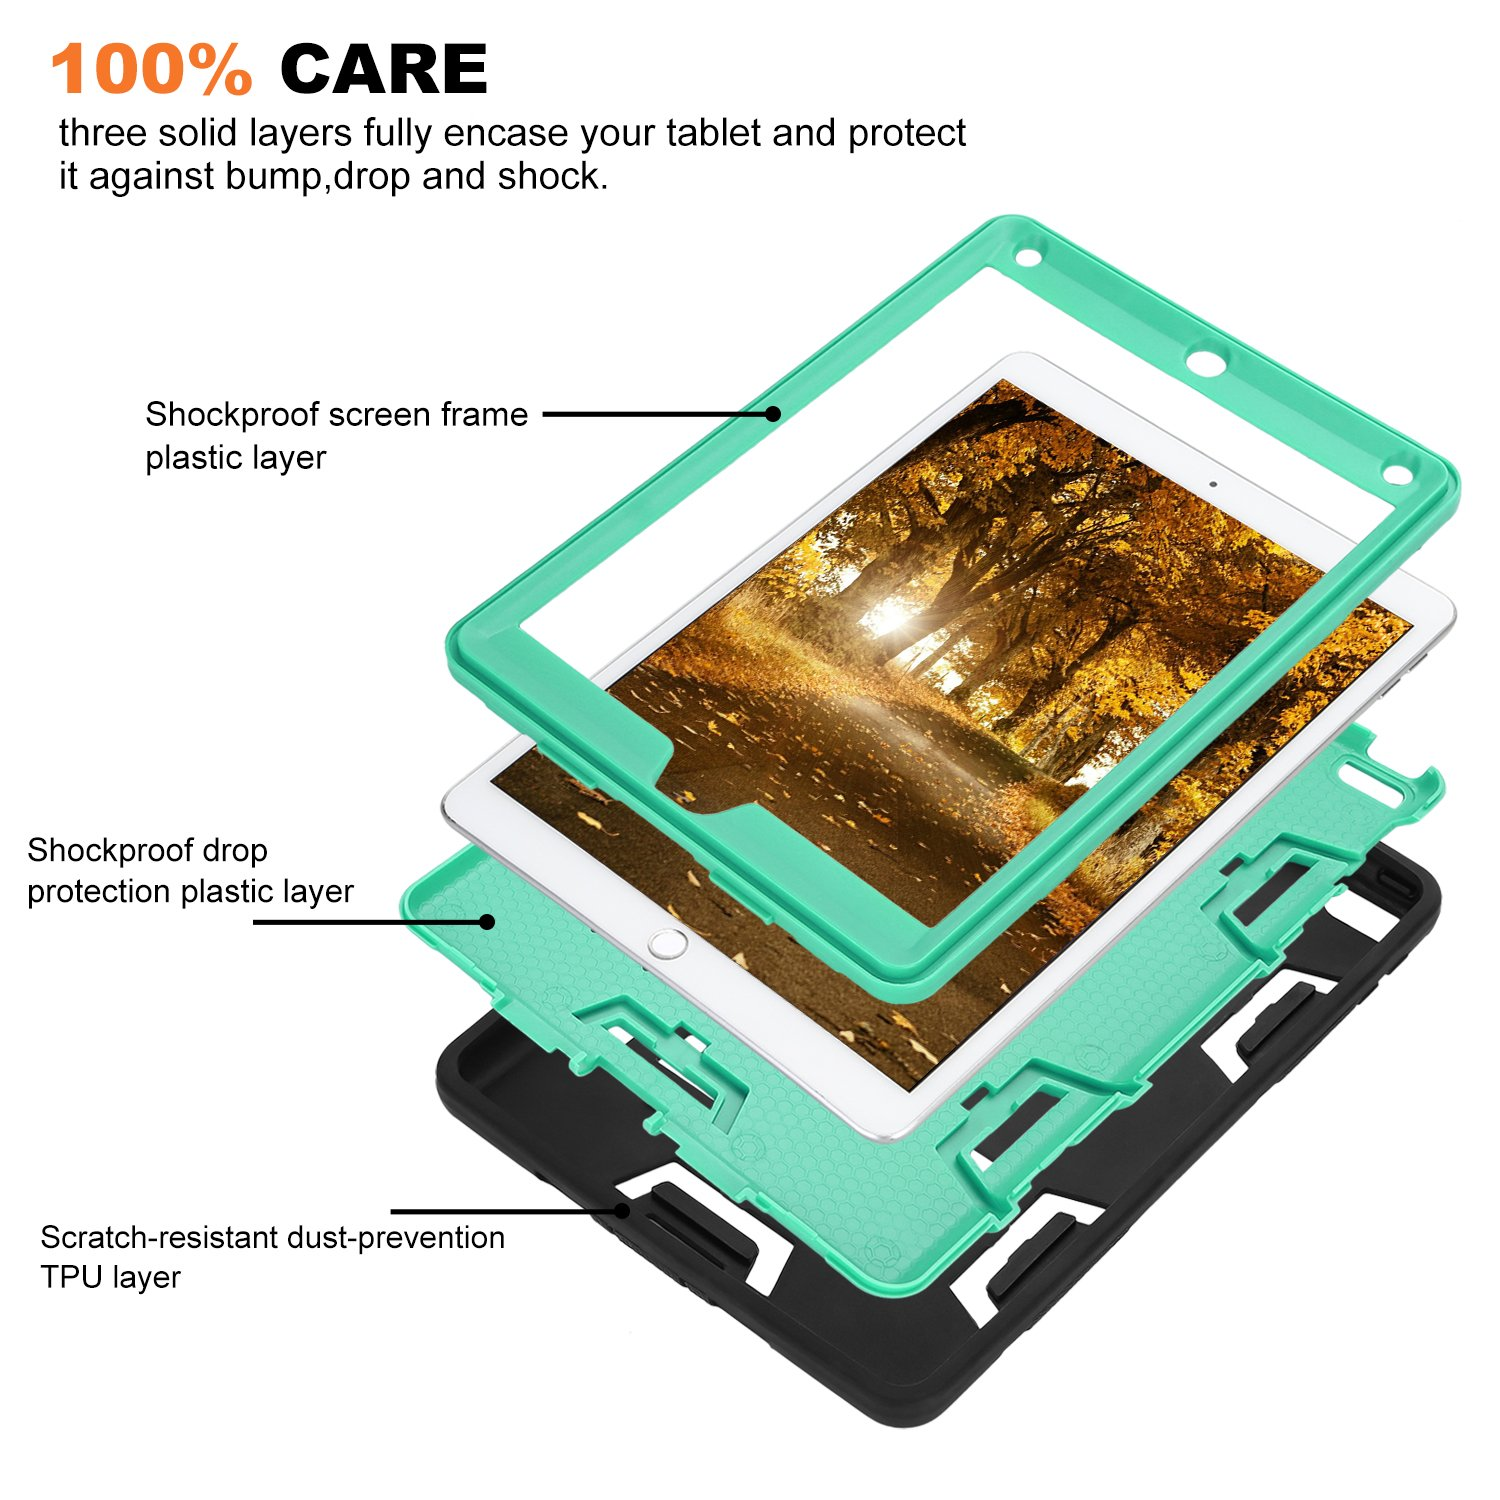 Rugged 3-Layer Heavy Duty Shock Proof iPad 234 Mini Pro Air Case Shell Cover 33